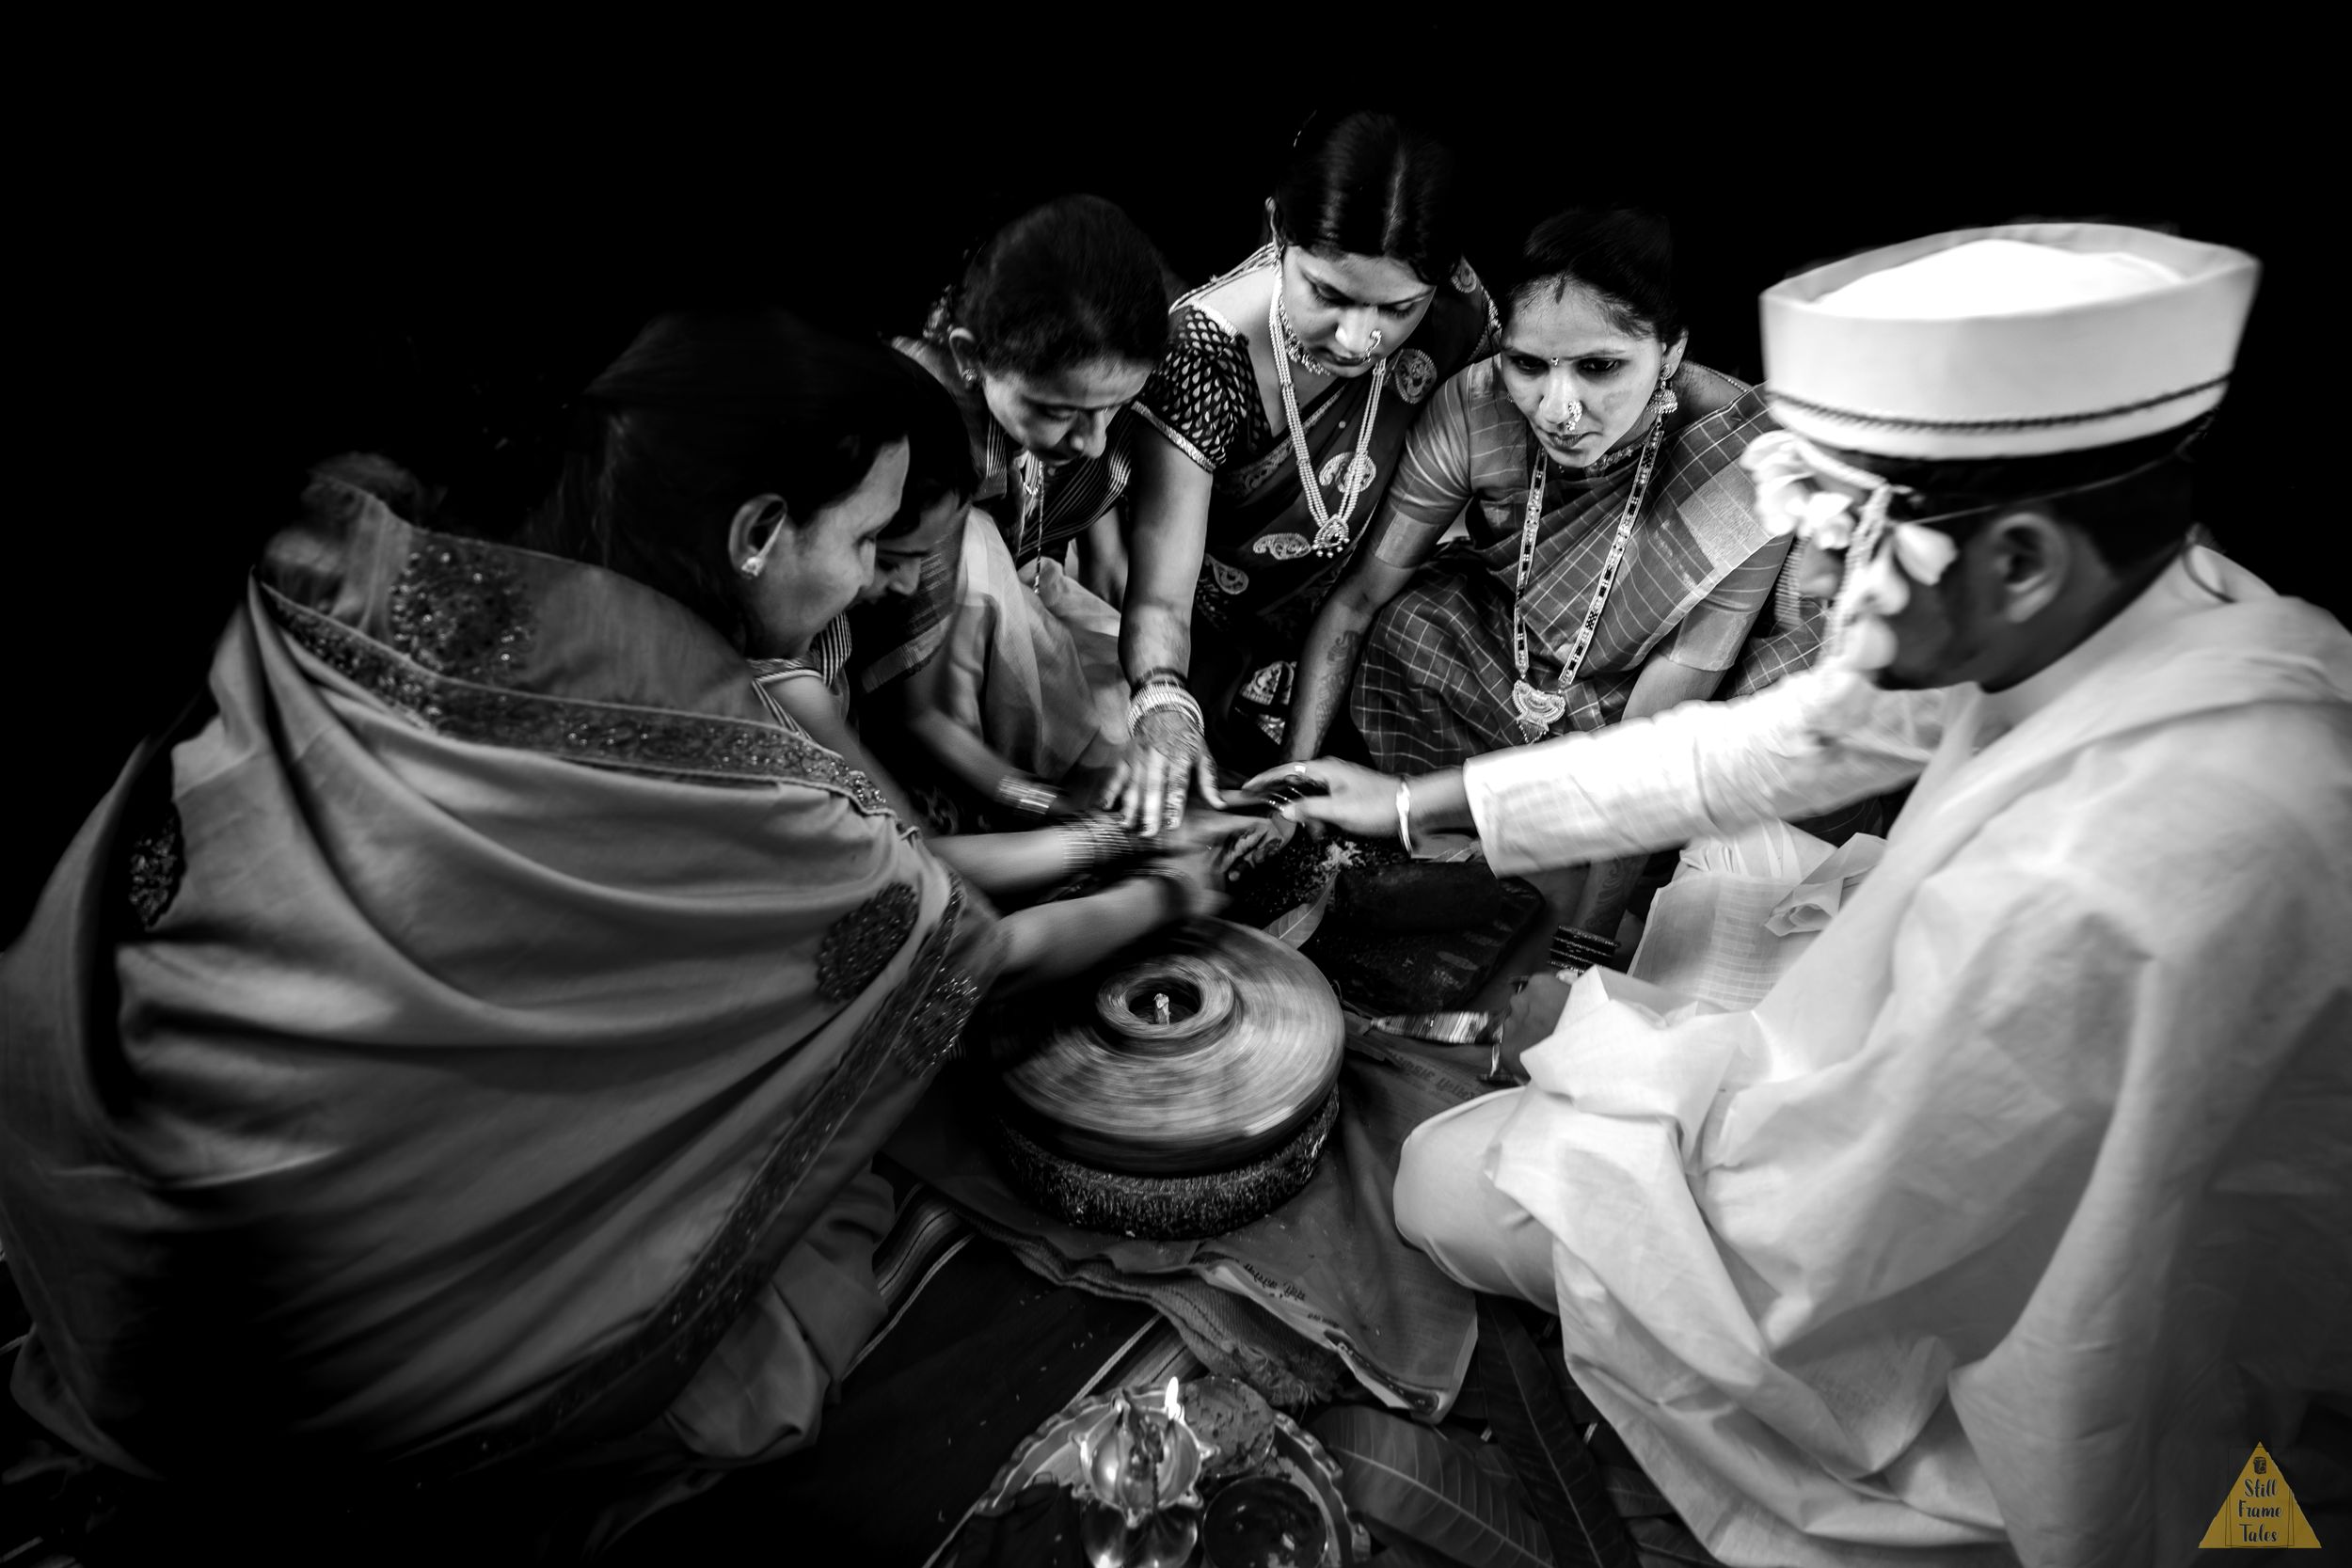 Family & groom performing wedding day ritual in a black & withe picture